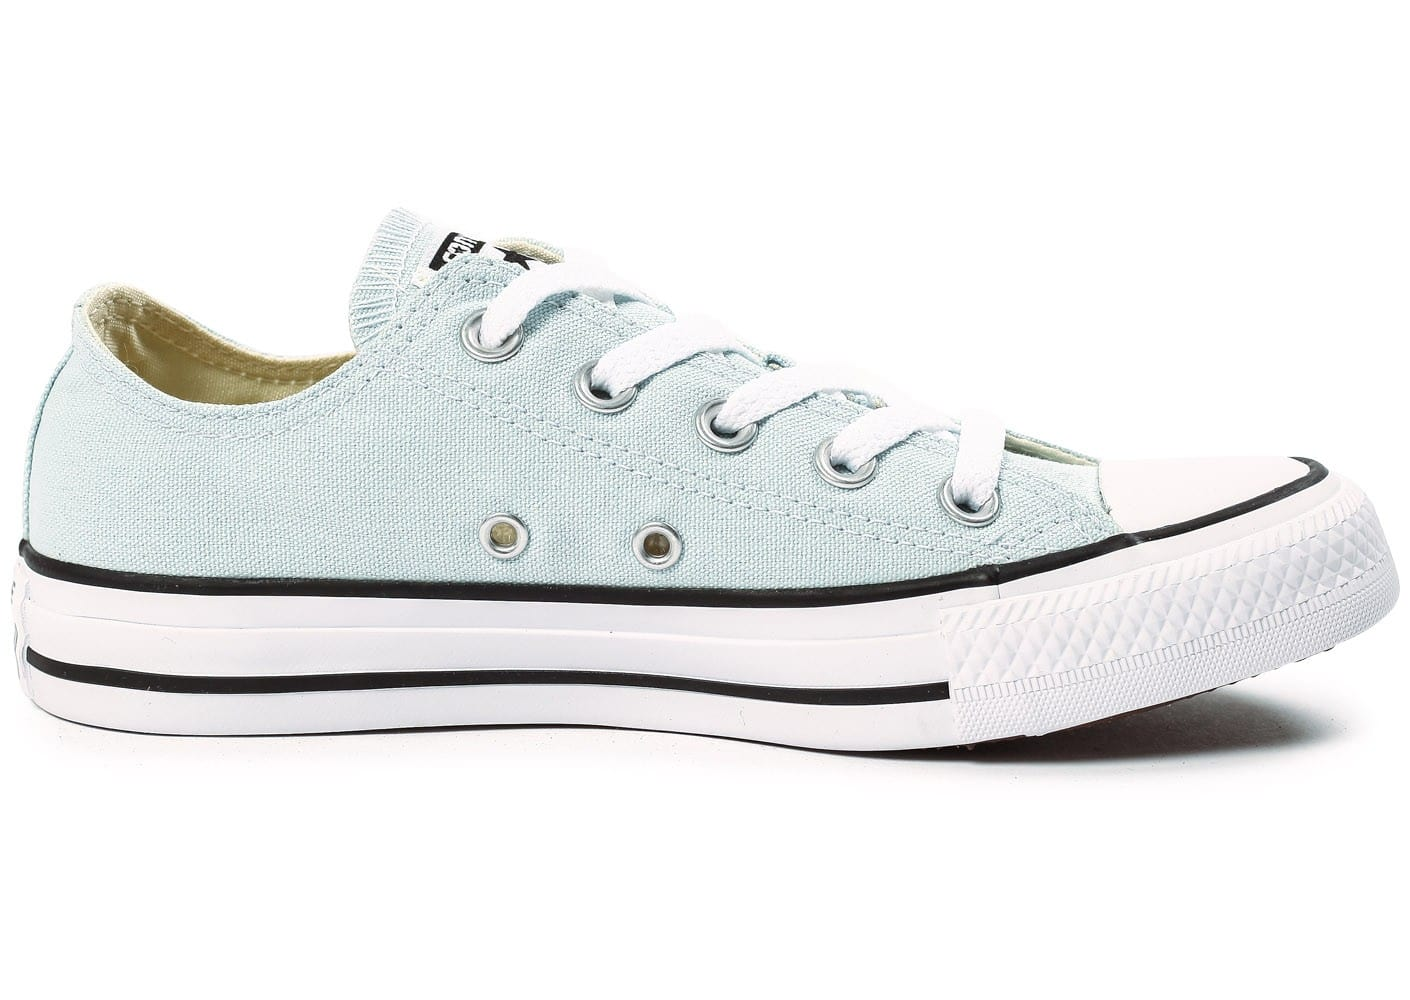 Converse Chuck Taylor All Star Low Bleu Ciel